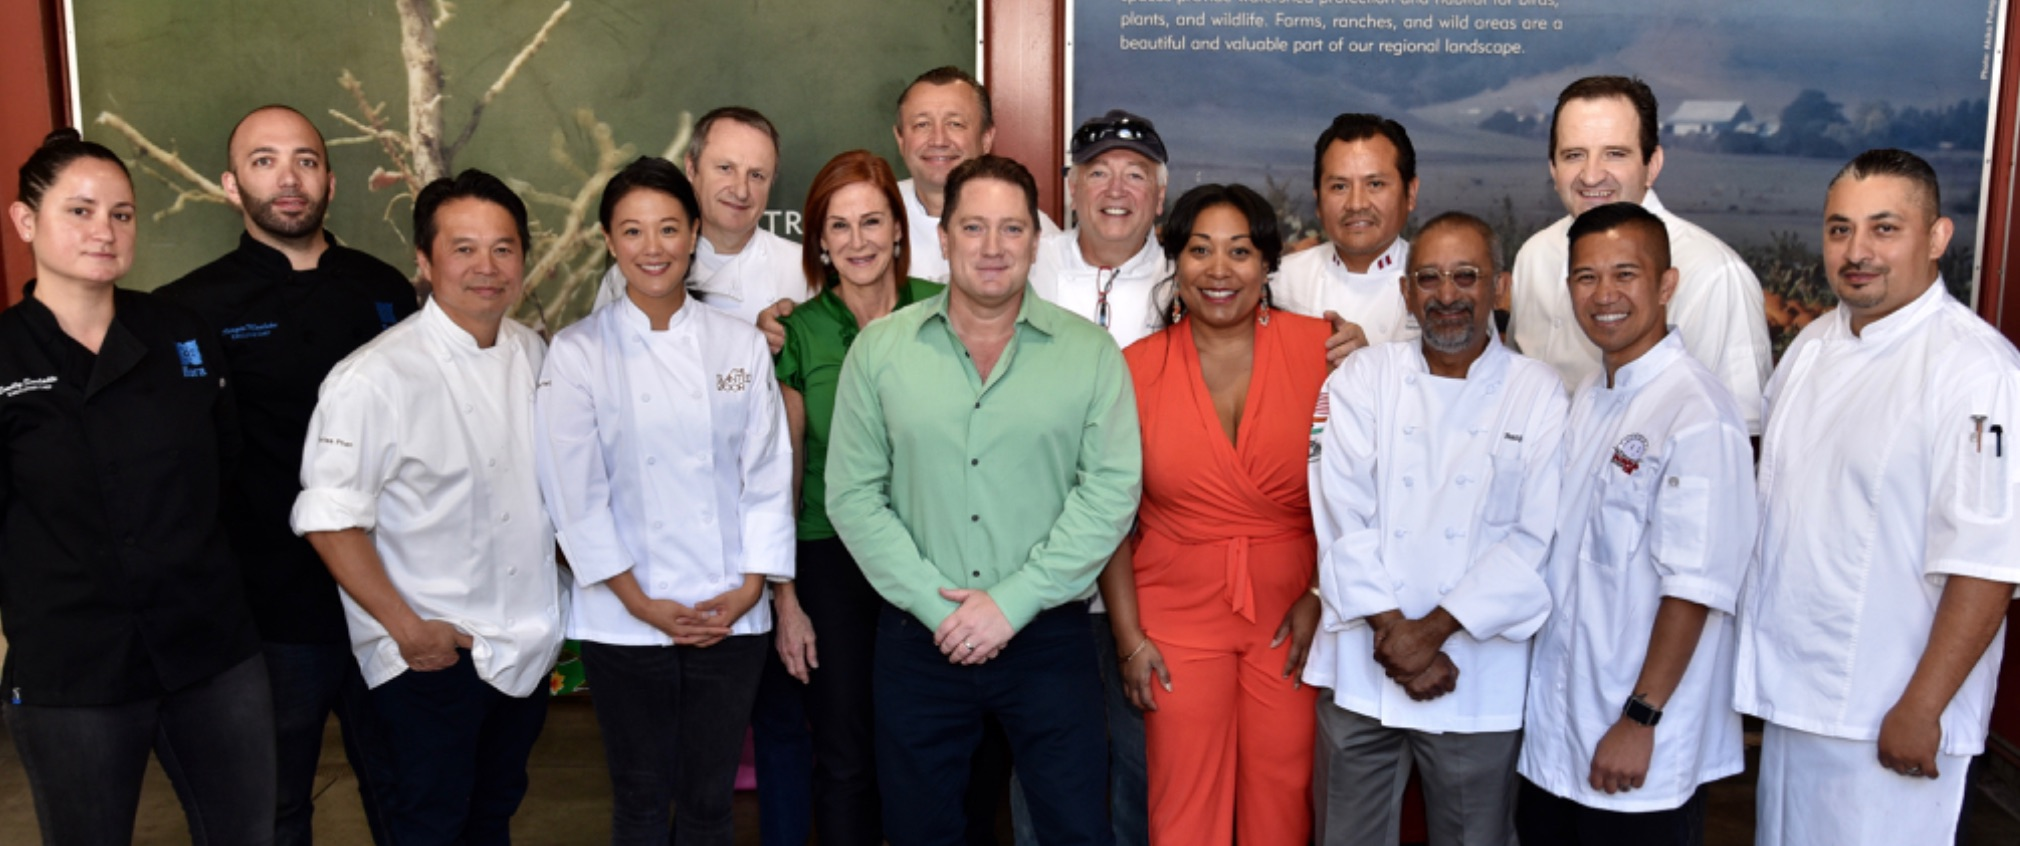 Liam Mayclem, center in green shirt, is surrounded by chefs and members of the Golden Gate Restaurant Association